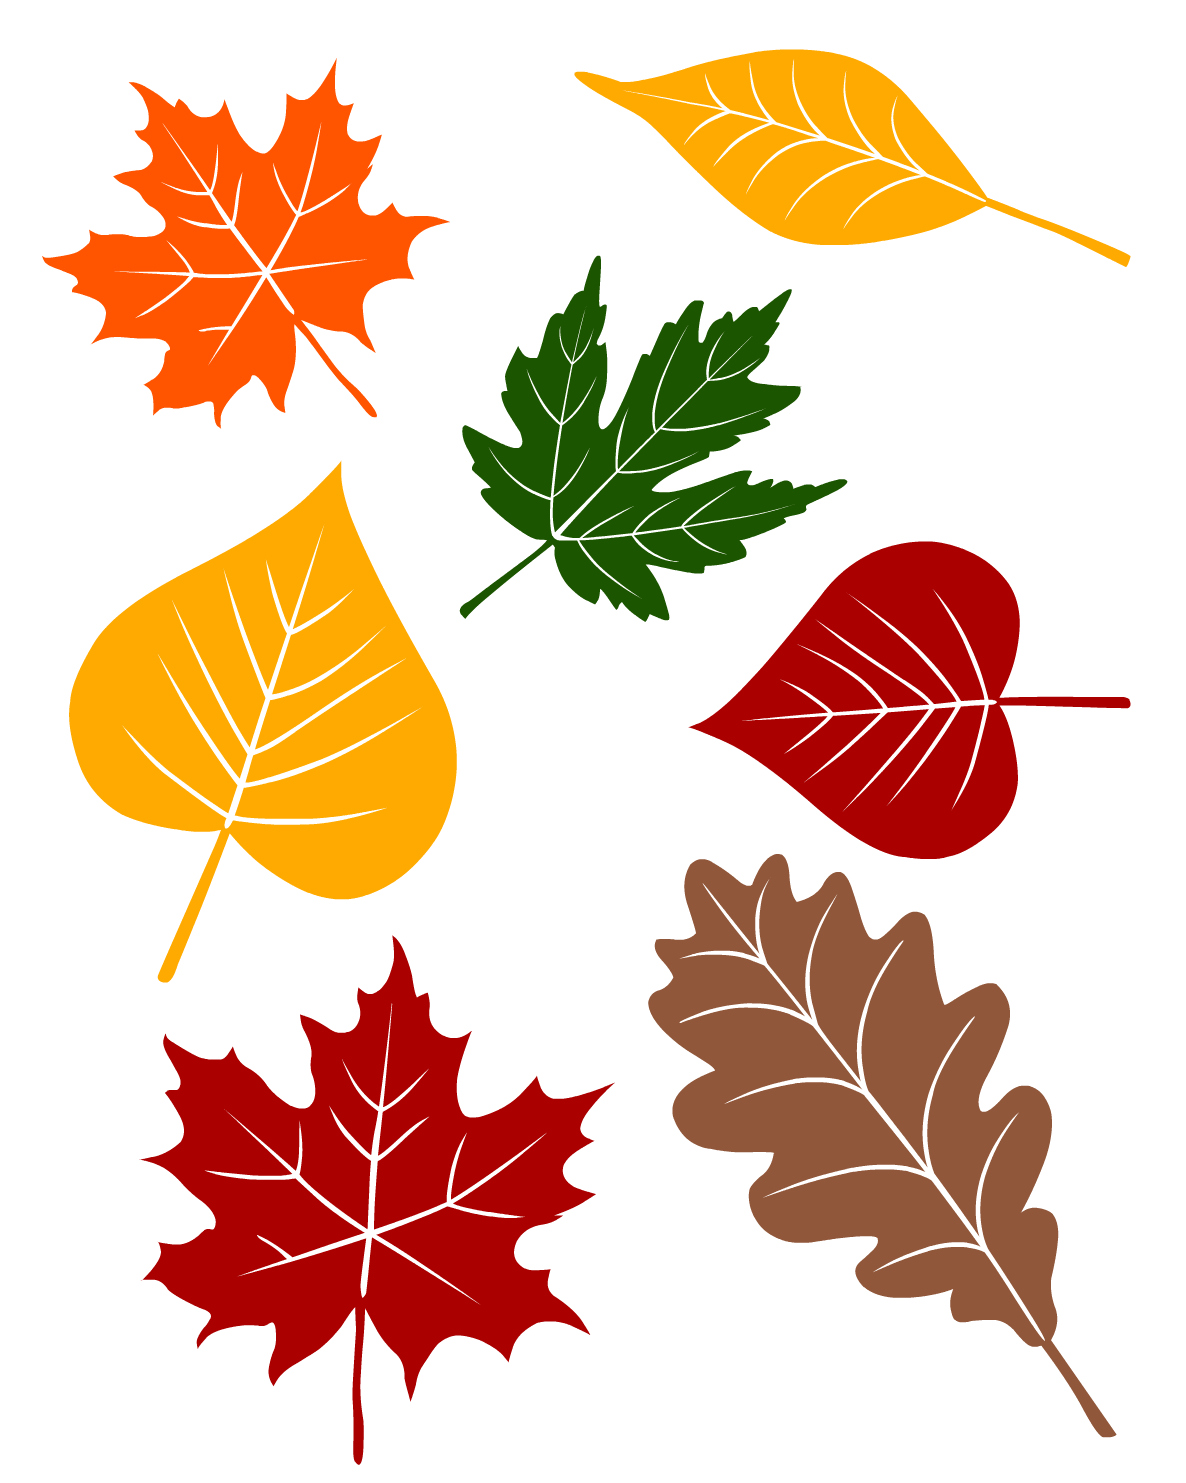 Fall leaves printable from no time for flash for Autumn leaf template free printables